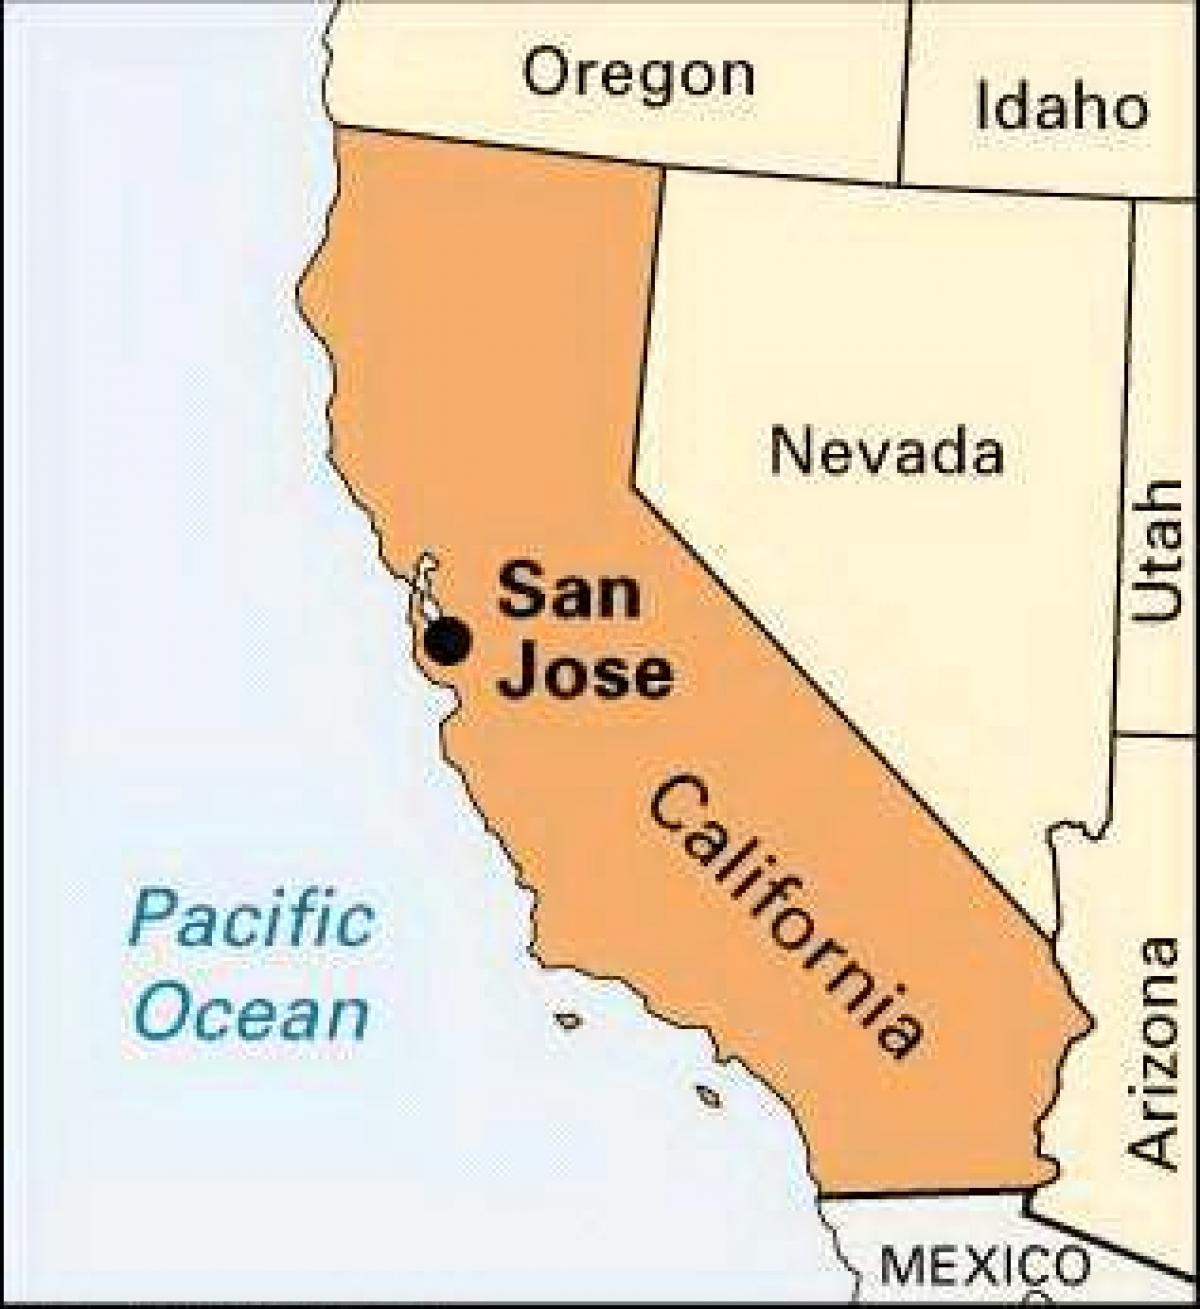 San Jose California Map California Road Map Where Is San Jose - San Jose California Map